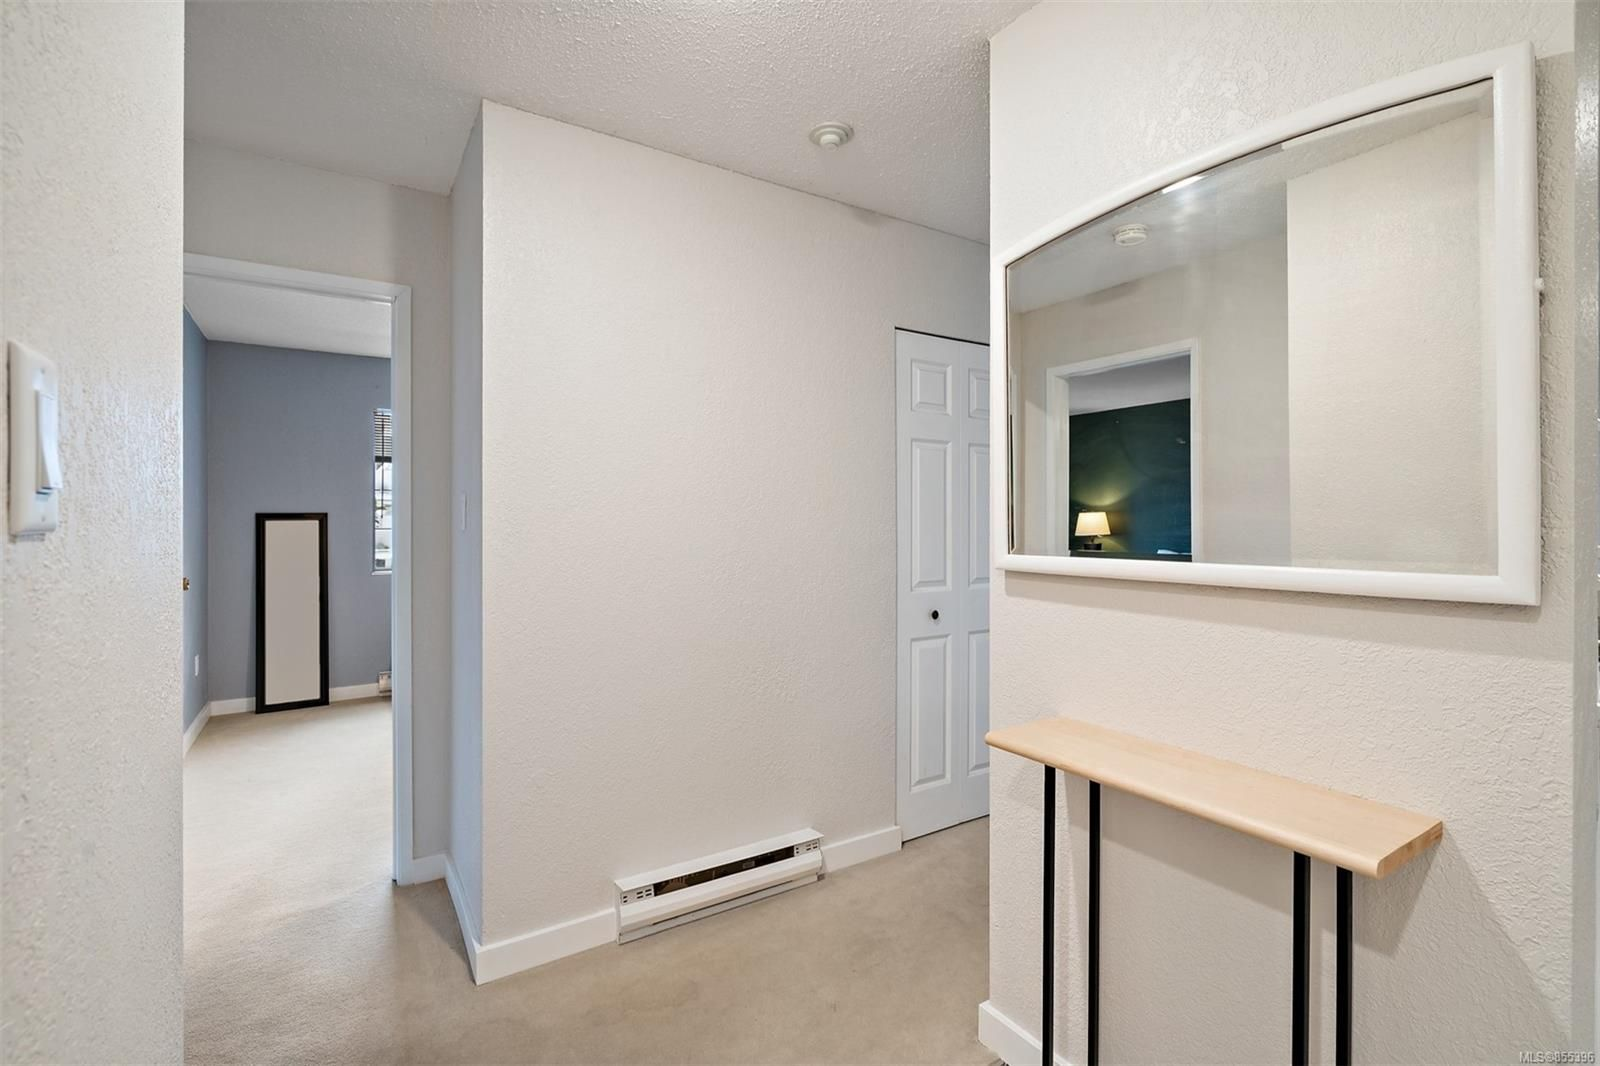 Photo 4: Photos: 308 1060 Linden Ave in : Vi Rockland Condo for sale (Victoria)  : MLS®# 855396